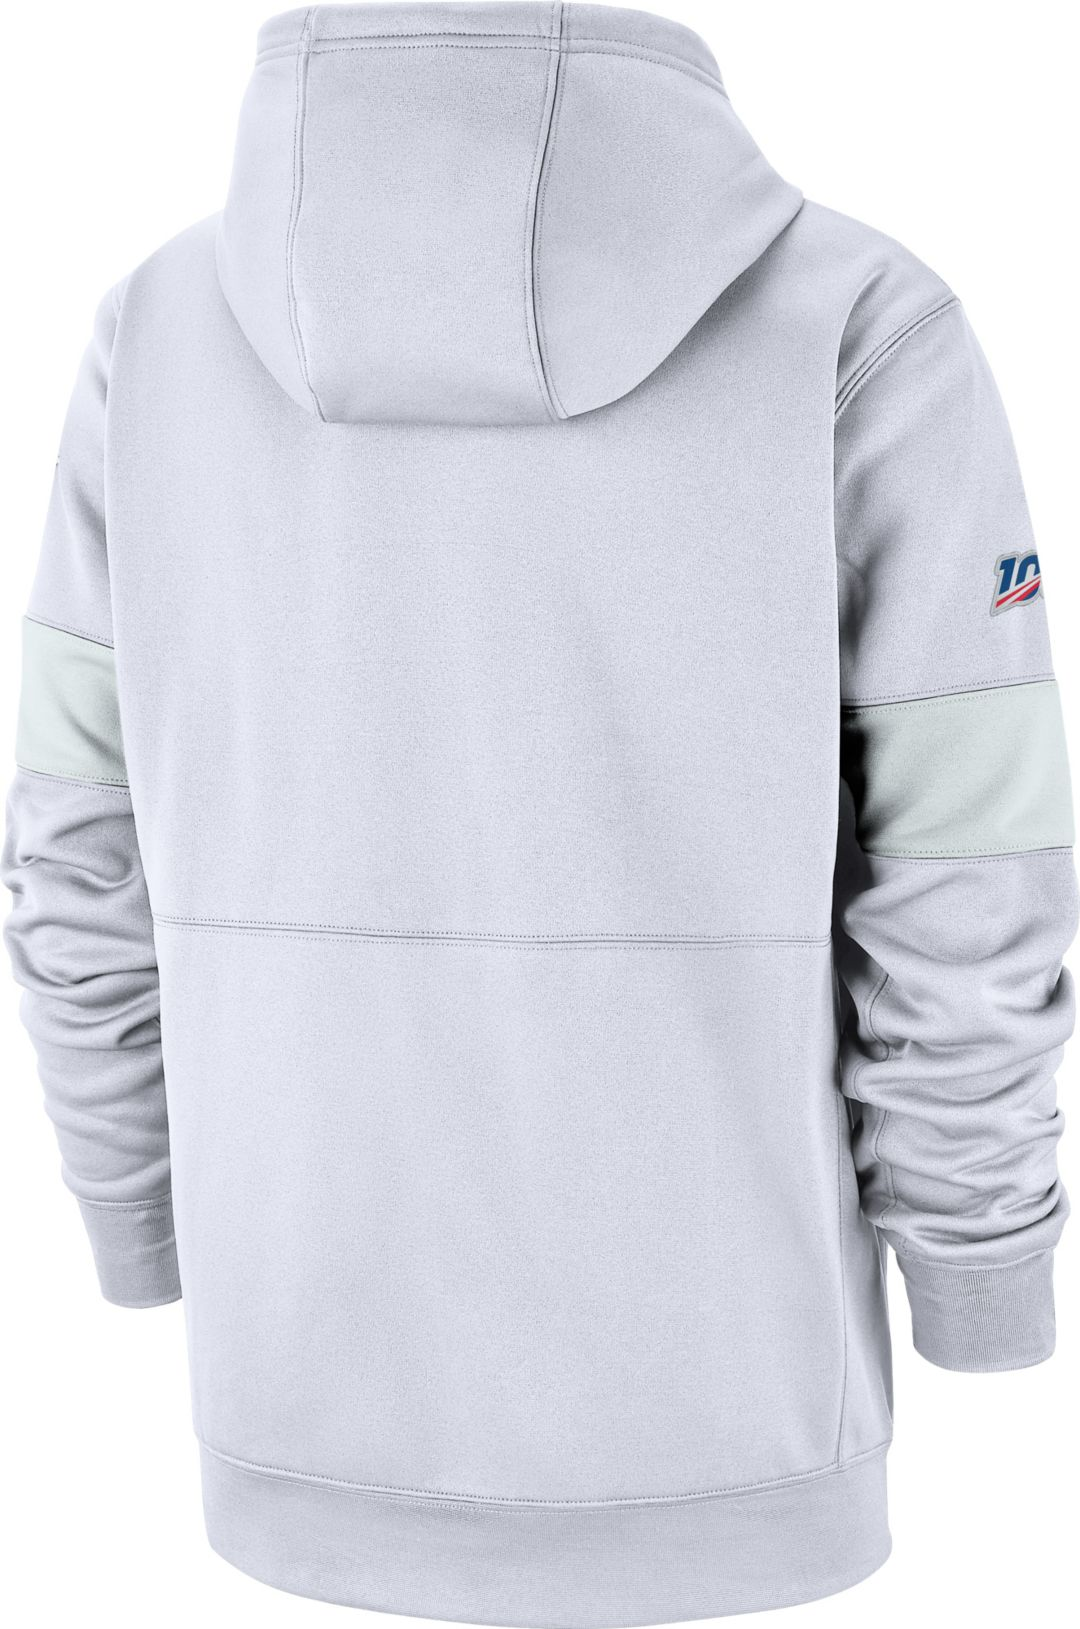 meet 3cd9c 5b8db Nike Men's Kansas City Chiefs 100th Sideline Therma-FIT Pullover White  Hoodie